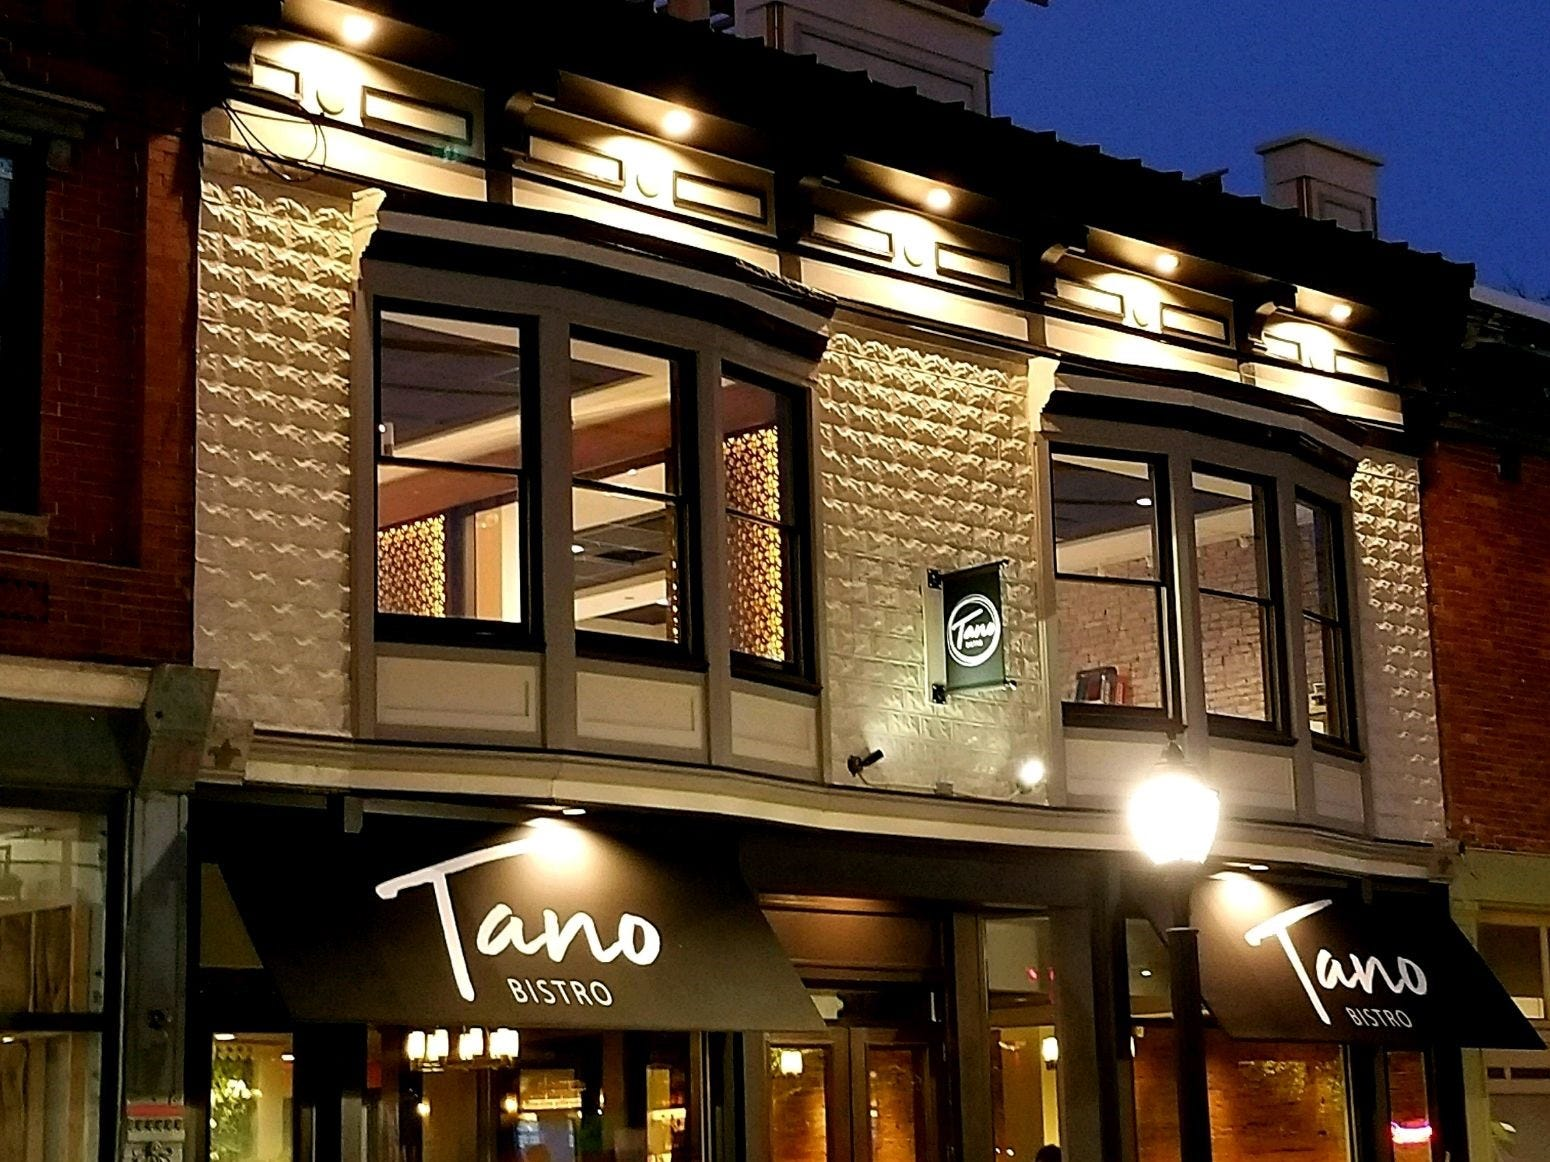 Tano Bistro reopens in Loveland.